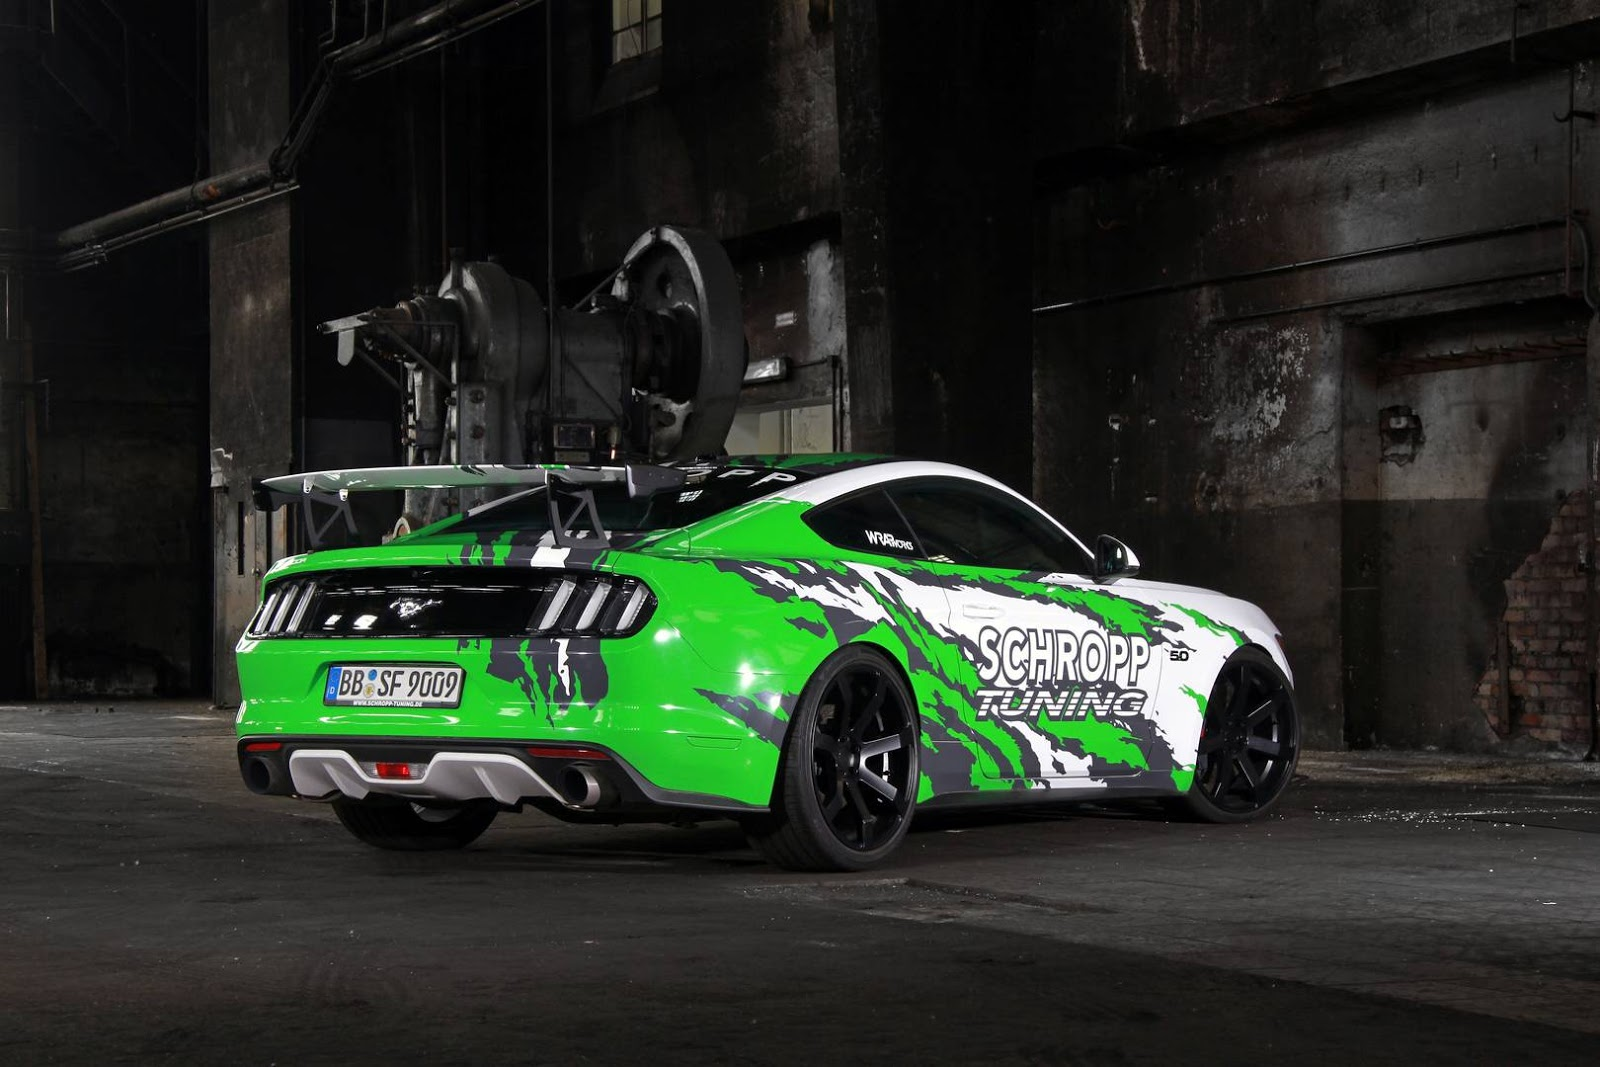 schropp tuning creates 807 hp ford mustang. Black Bedroom Furniture Sets. Home Design Ideas